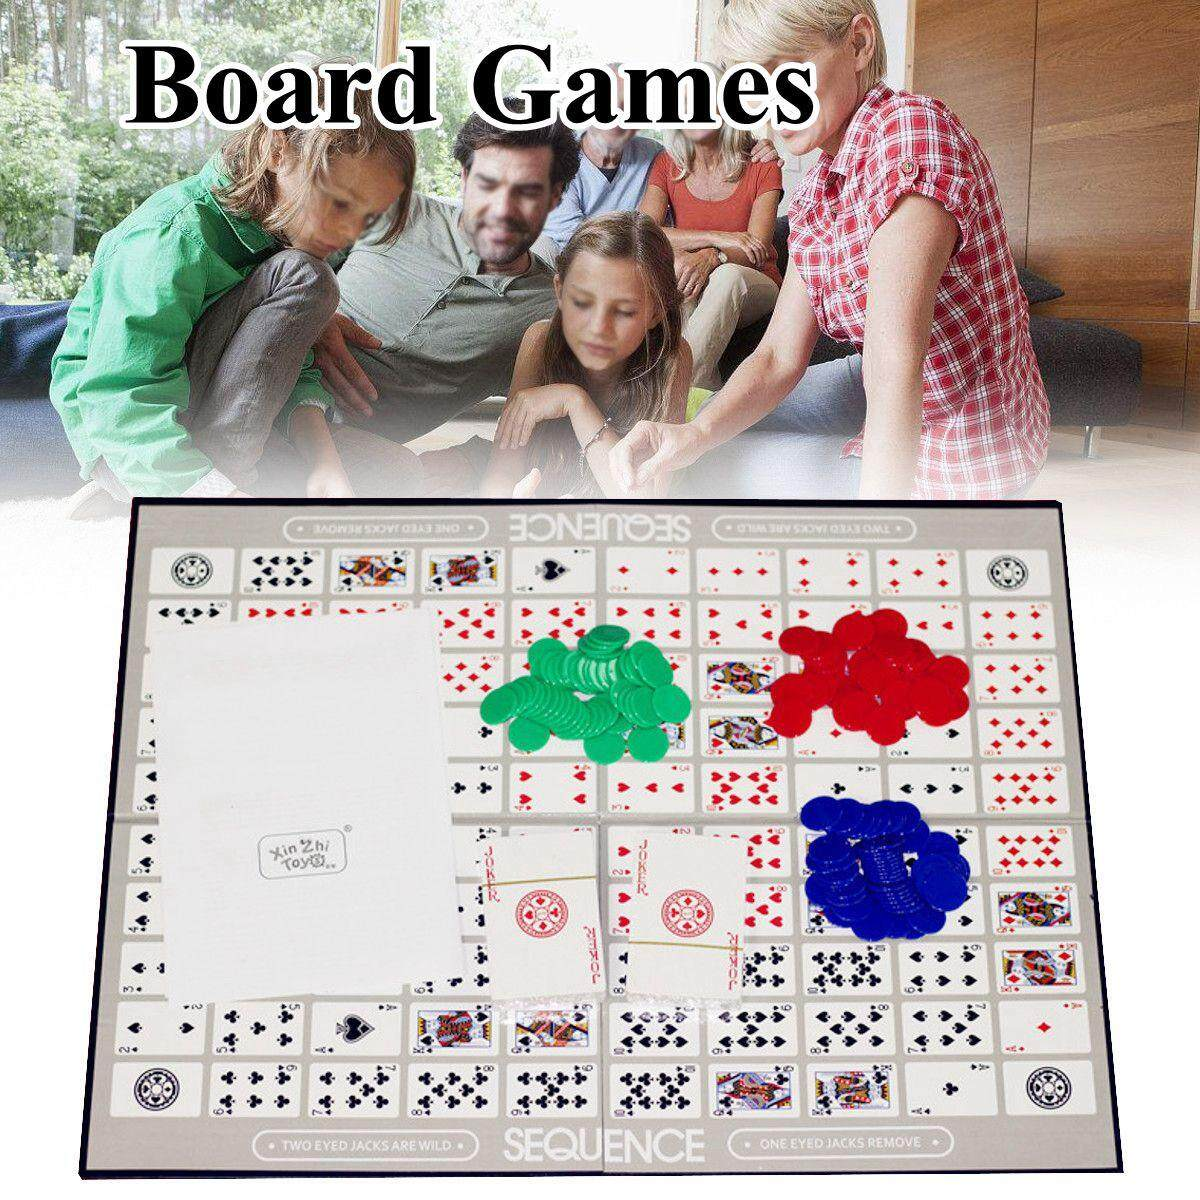 Best Price Board Games Challenge Sequence Strategy Card For 2 12 Players Family Fun Game Intl